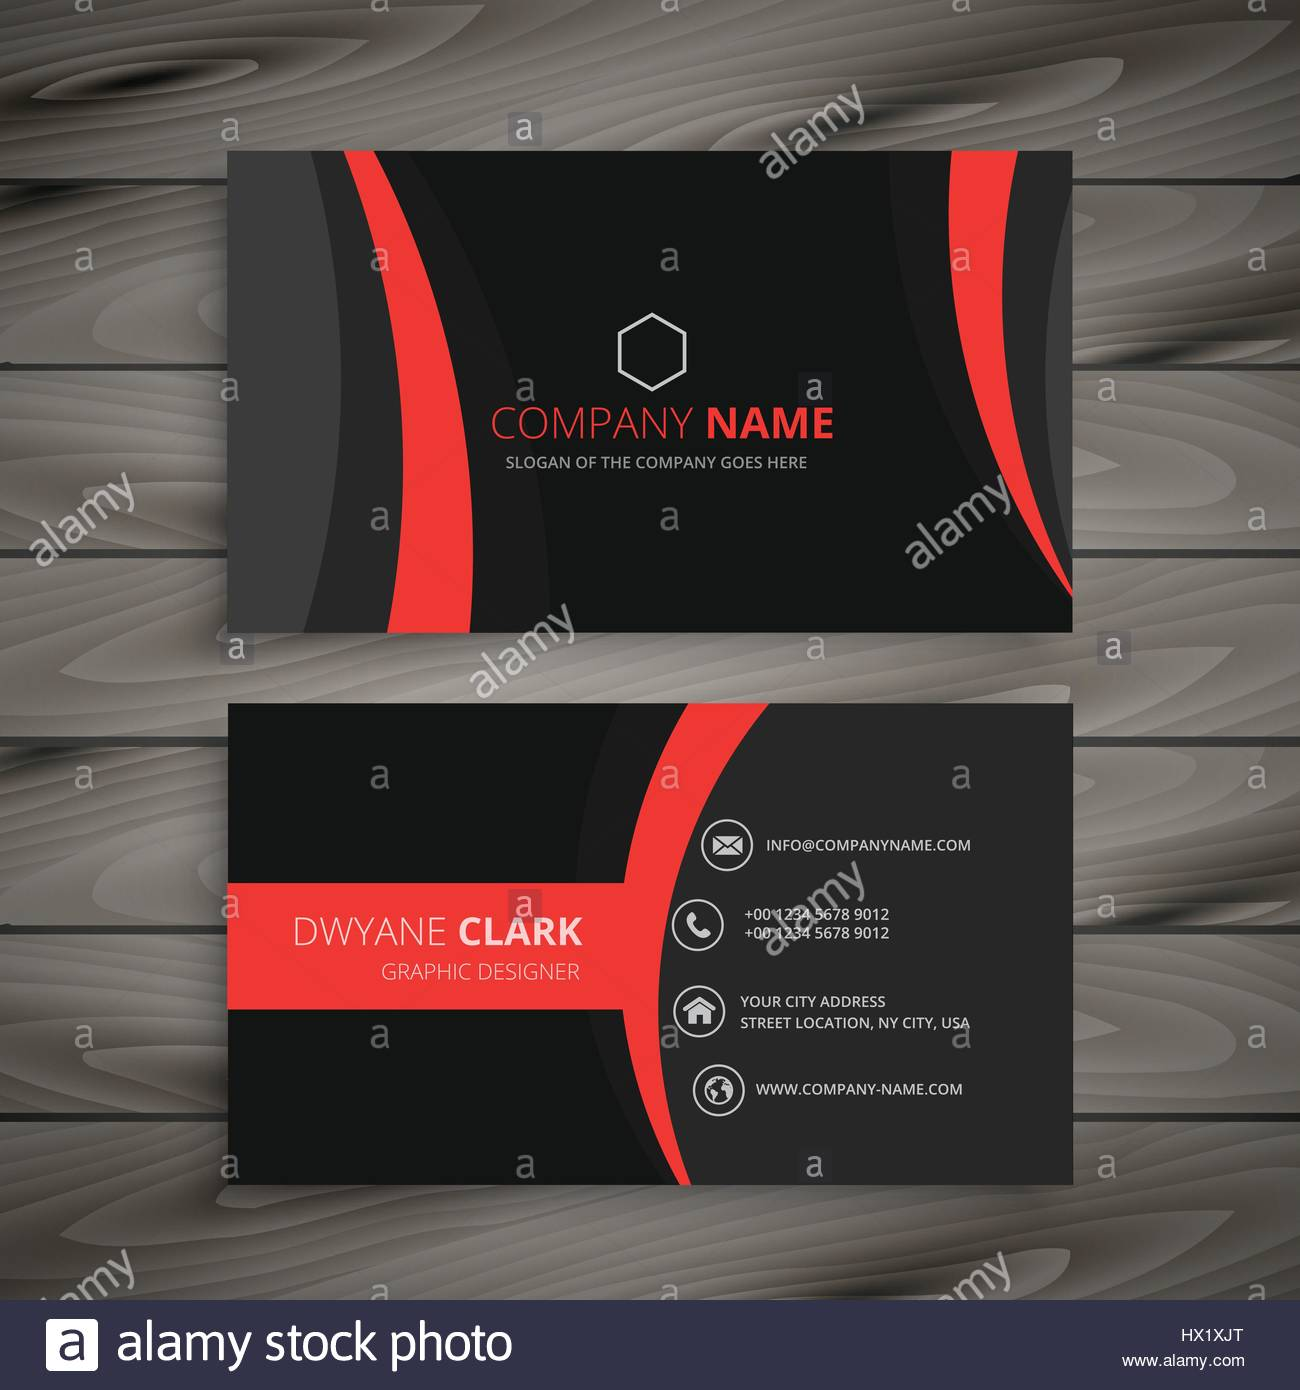 Dark modern red black business card template vector design stock dark modern red black business card template vector design illustration accmission Gallery